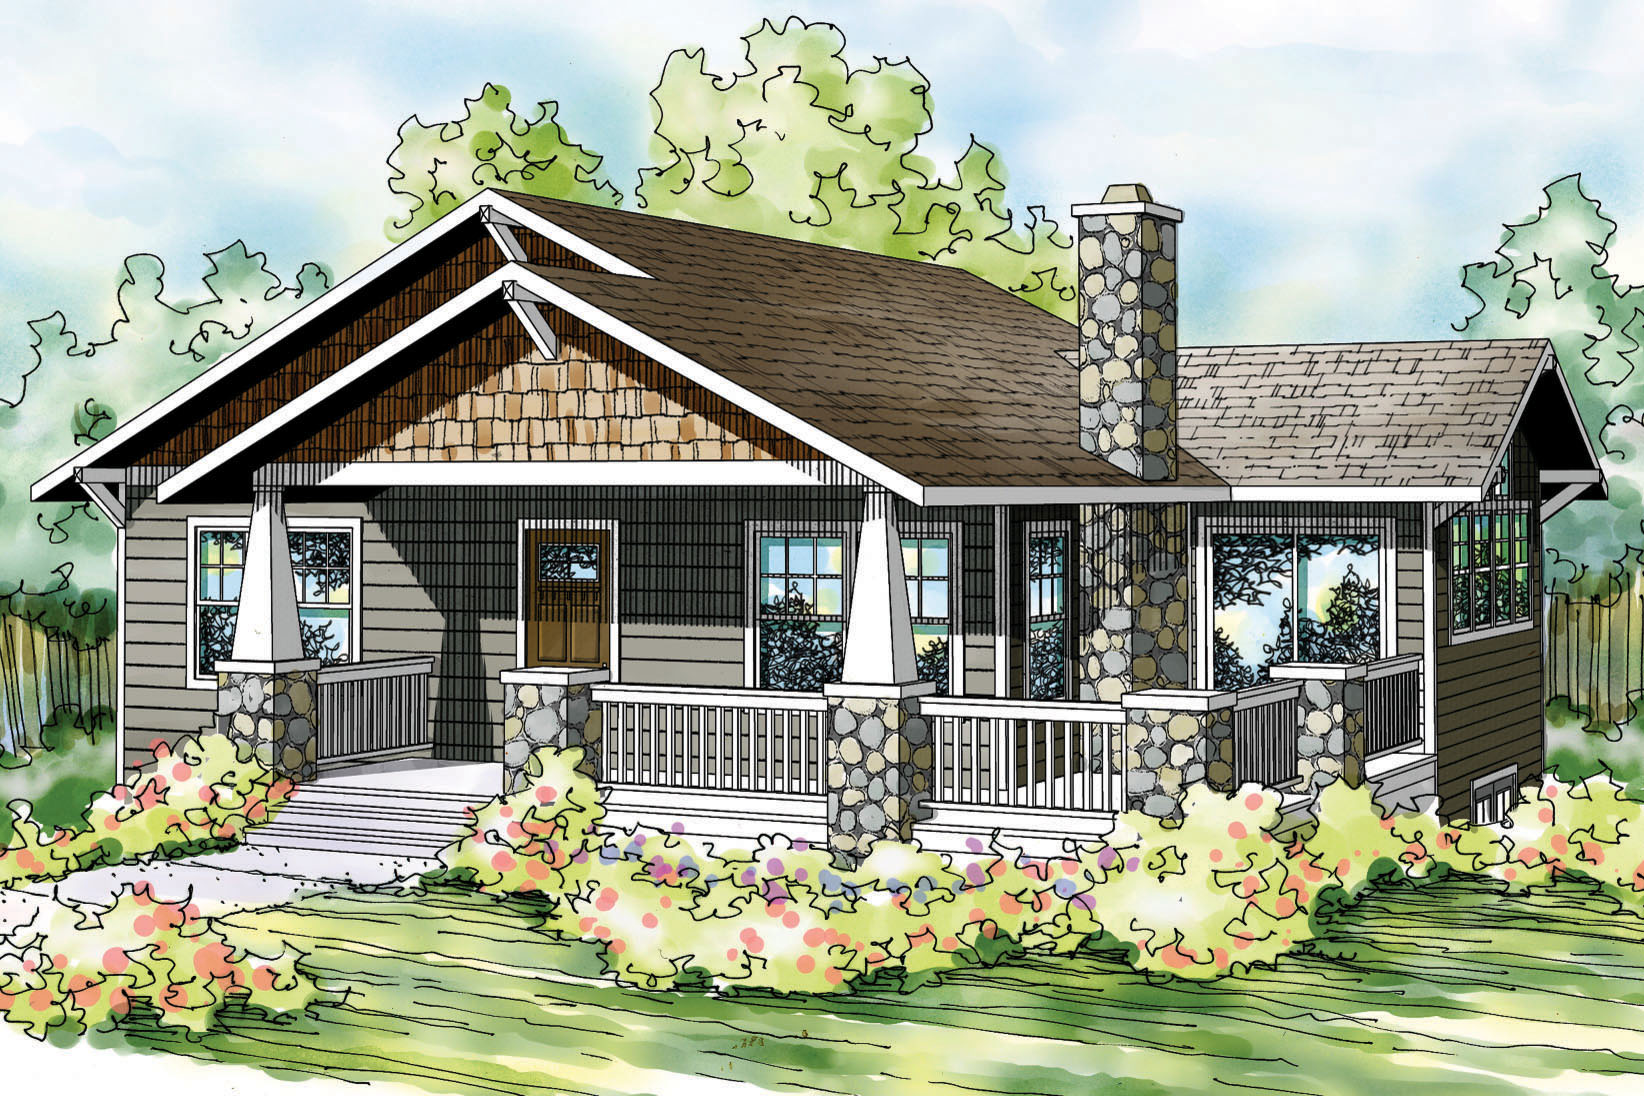 Bungalow House Plans   Lone Rock 41 020   Associated Designs Bungalow House Plan   Lone Rock 41 020   Front Elevation